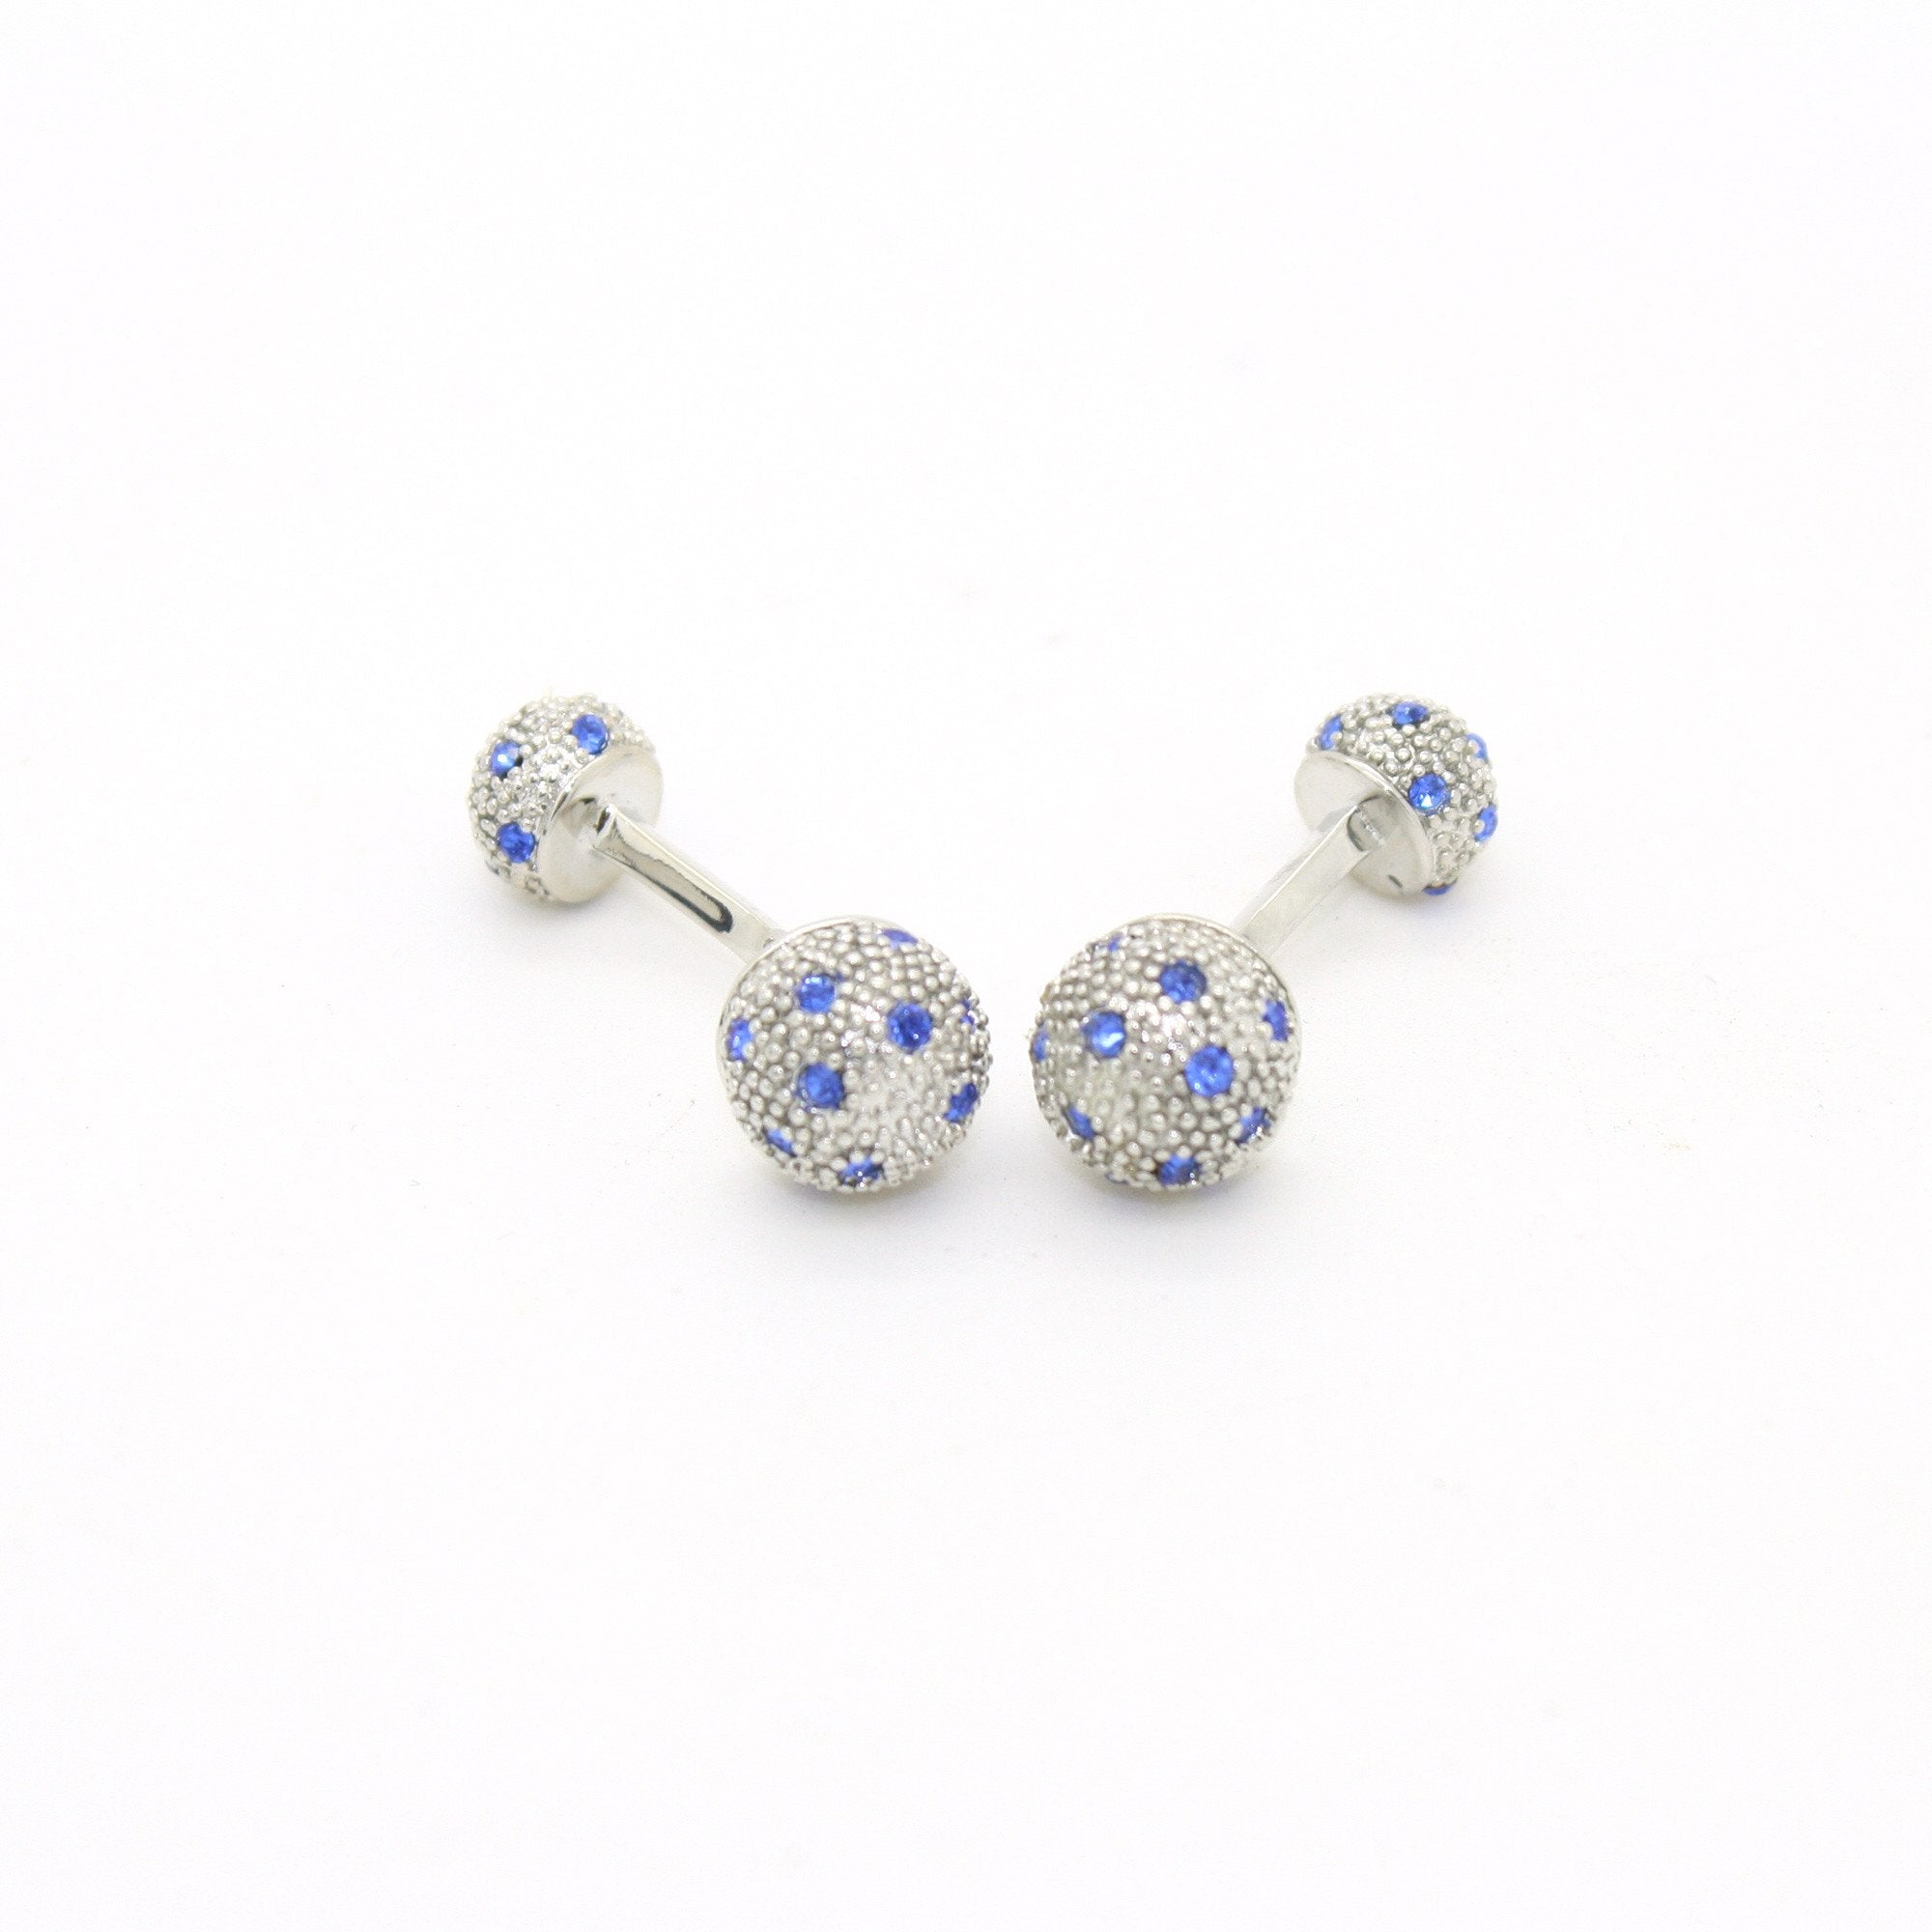 Silvertone Ball Gemstone Cuff Links With Jewelry Box - Giorgio's Menswear